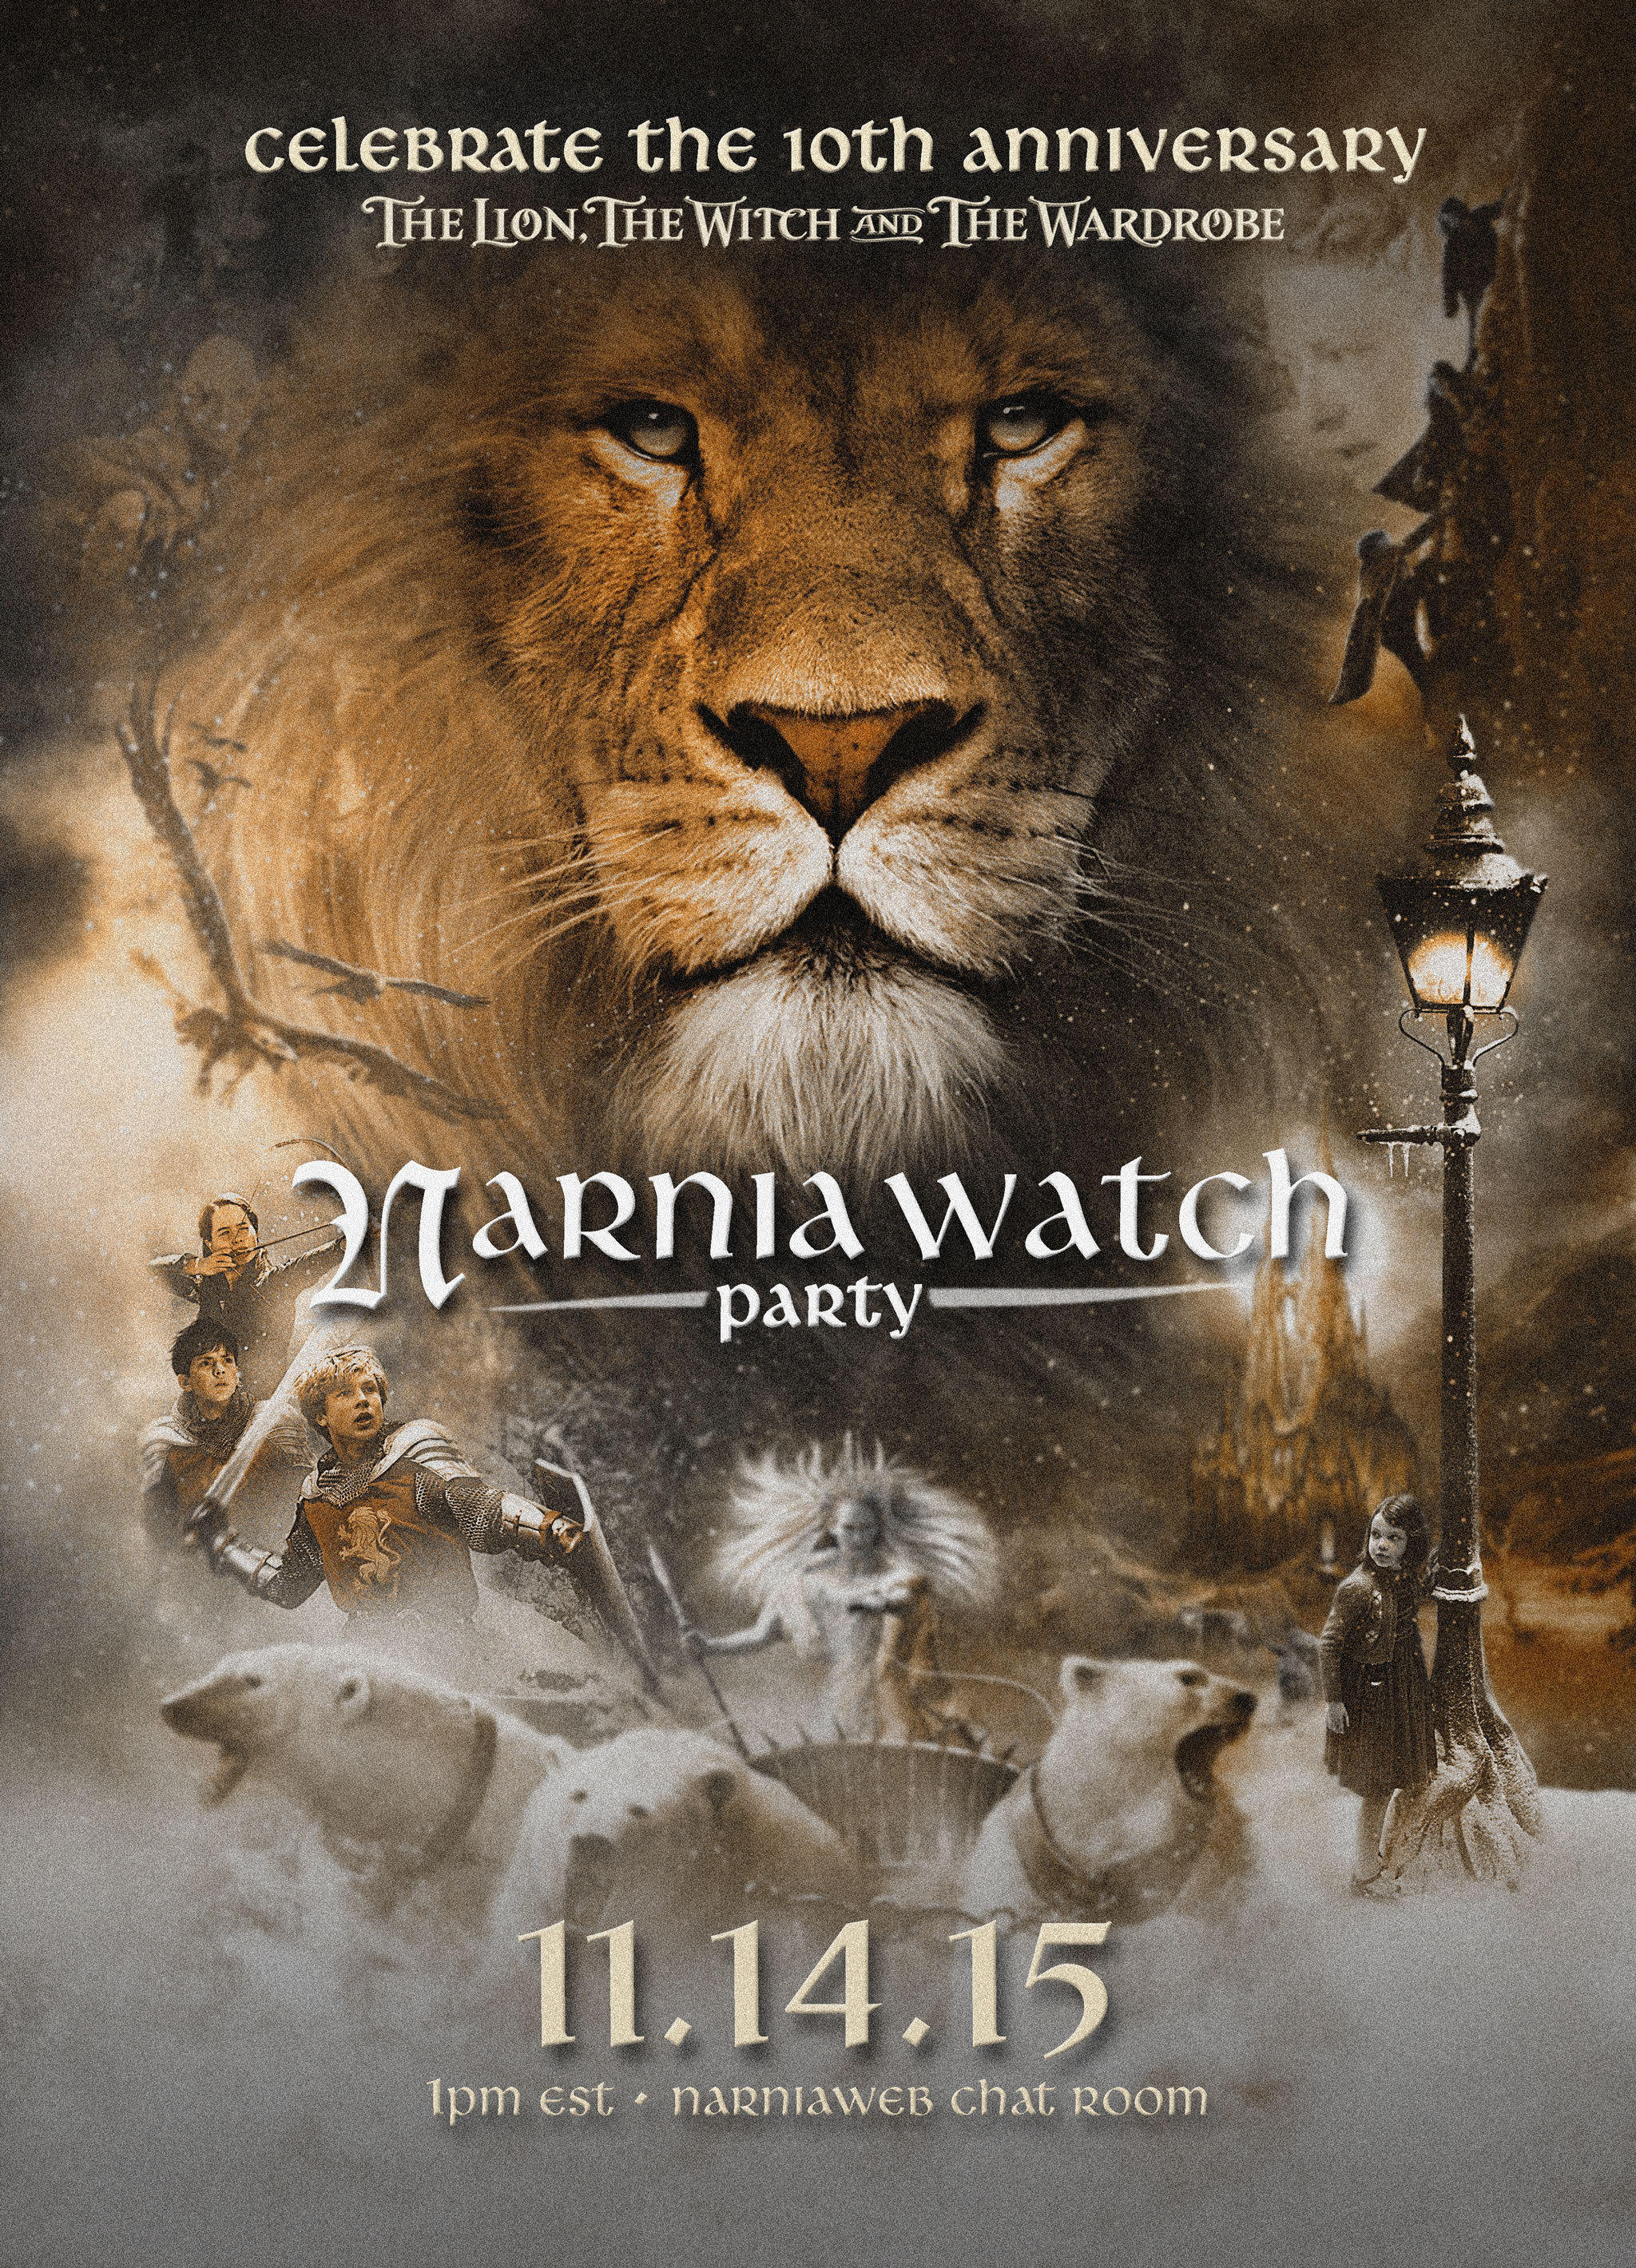 Narnia Watch Party Event on November 14